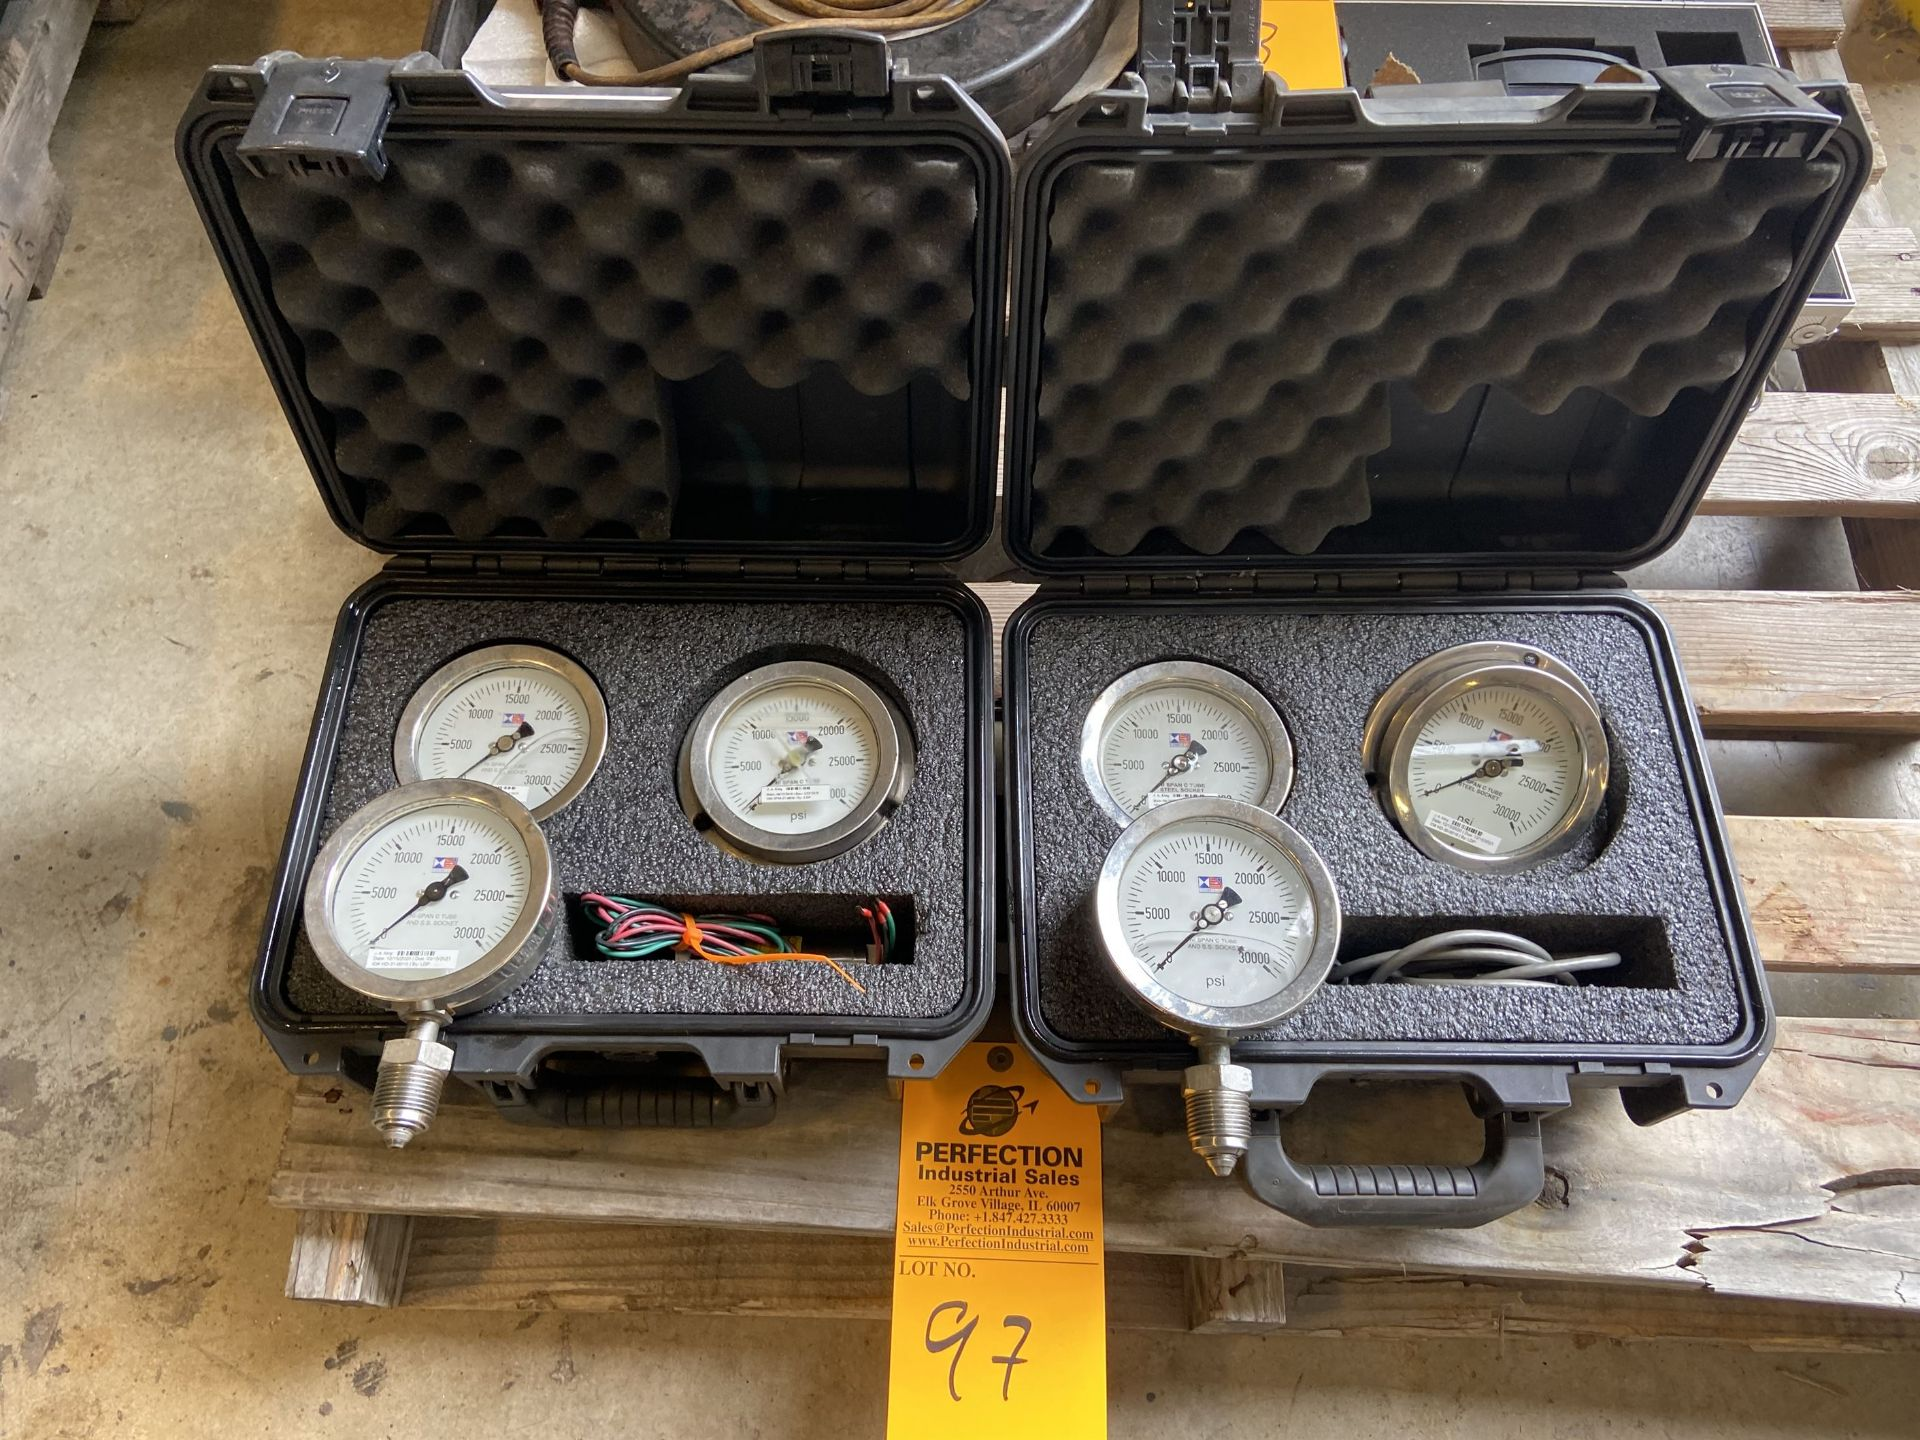 Lot of (2) Cases of High Pressure Gages